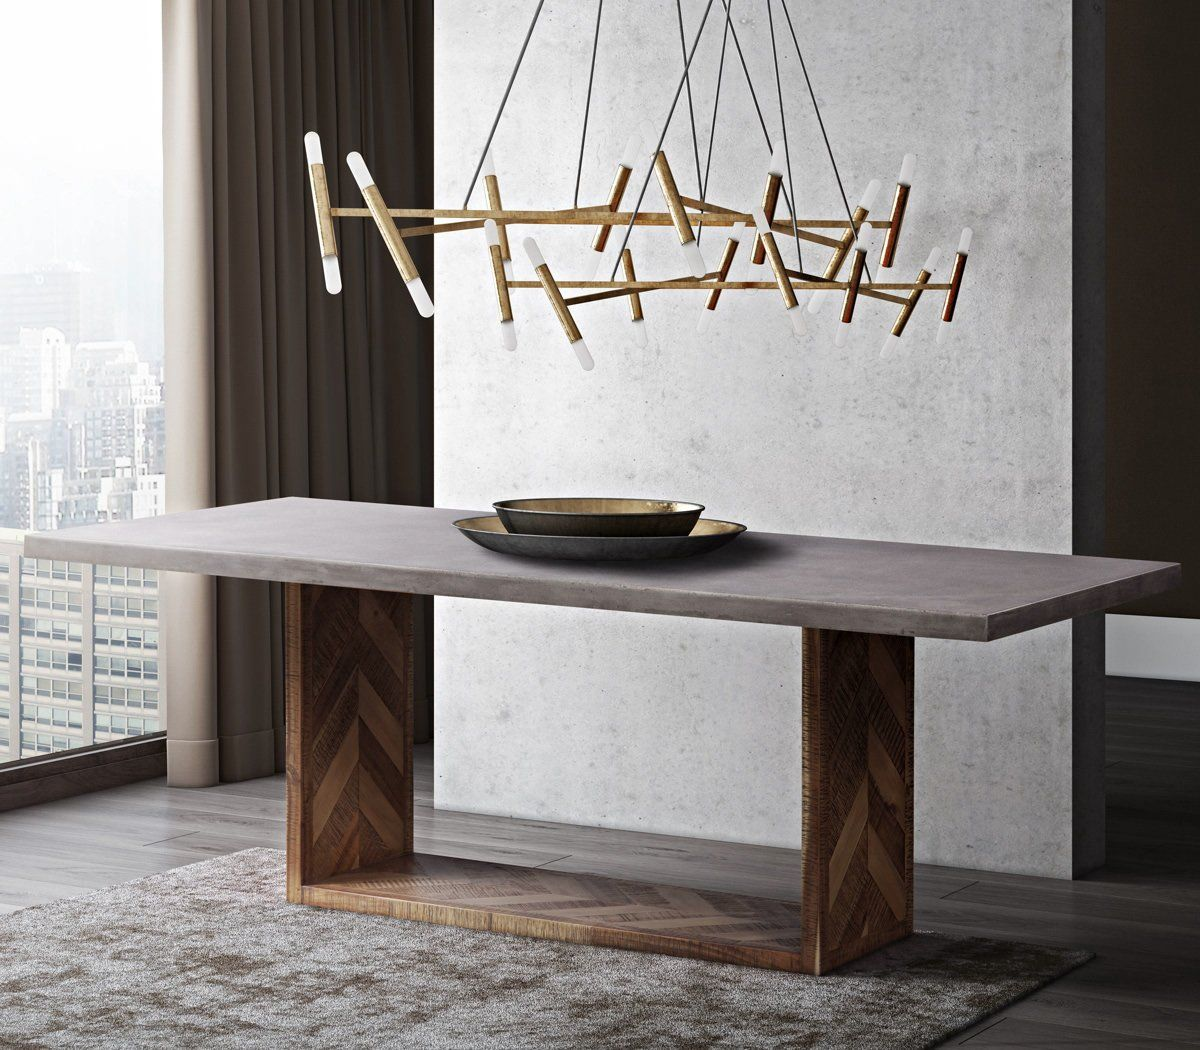 Tov Furniture Modern Wyckoff Mixed Dining Table Tov D7055 Modern Dining Table Concrete Dining Table Contemporary Dining Table